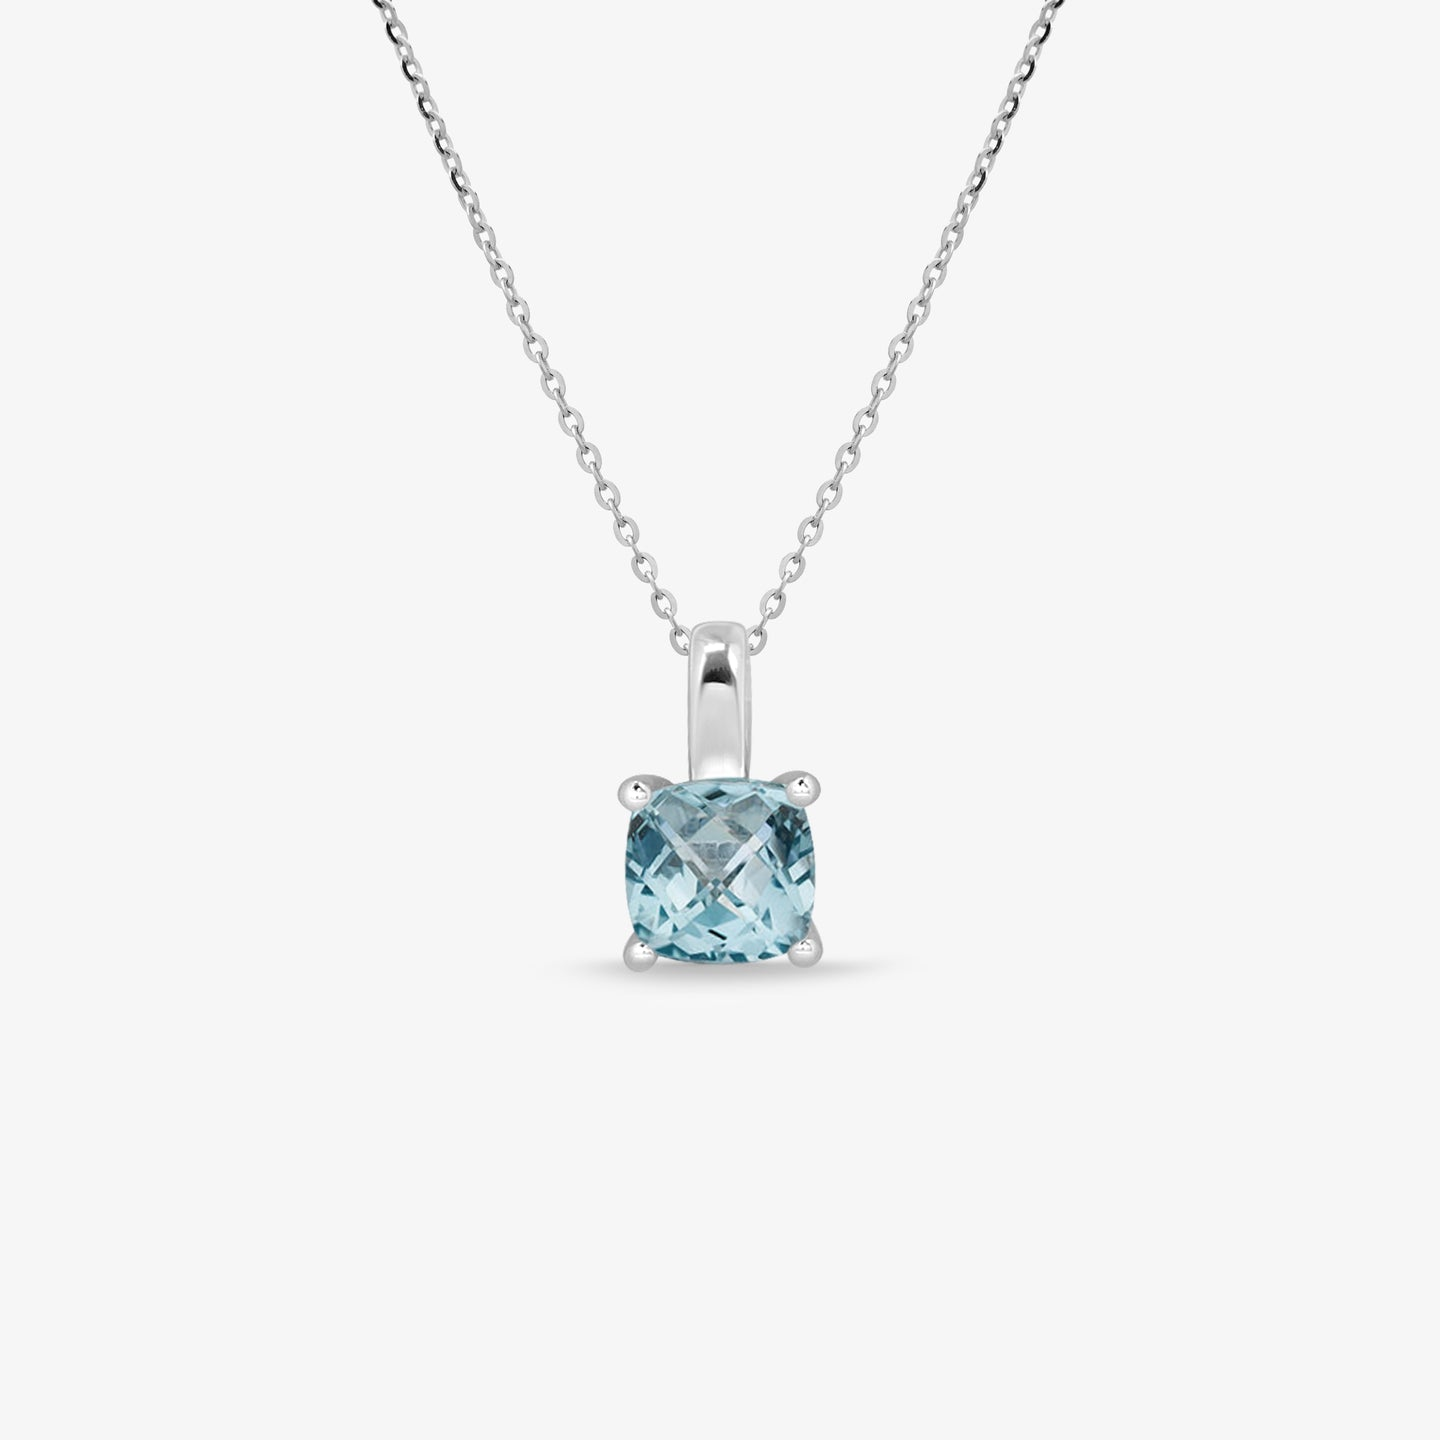 Blue Topaz Gemstone Pendant With Adjustable Gold Chain - estellacollection